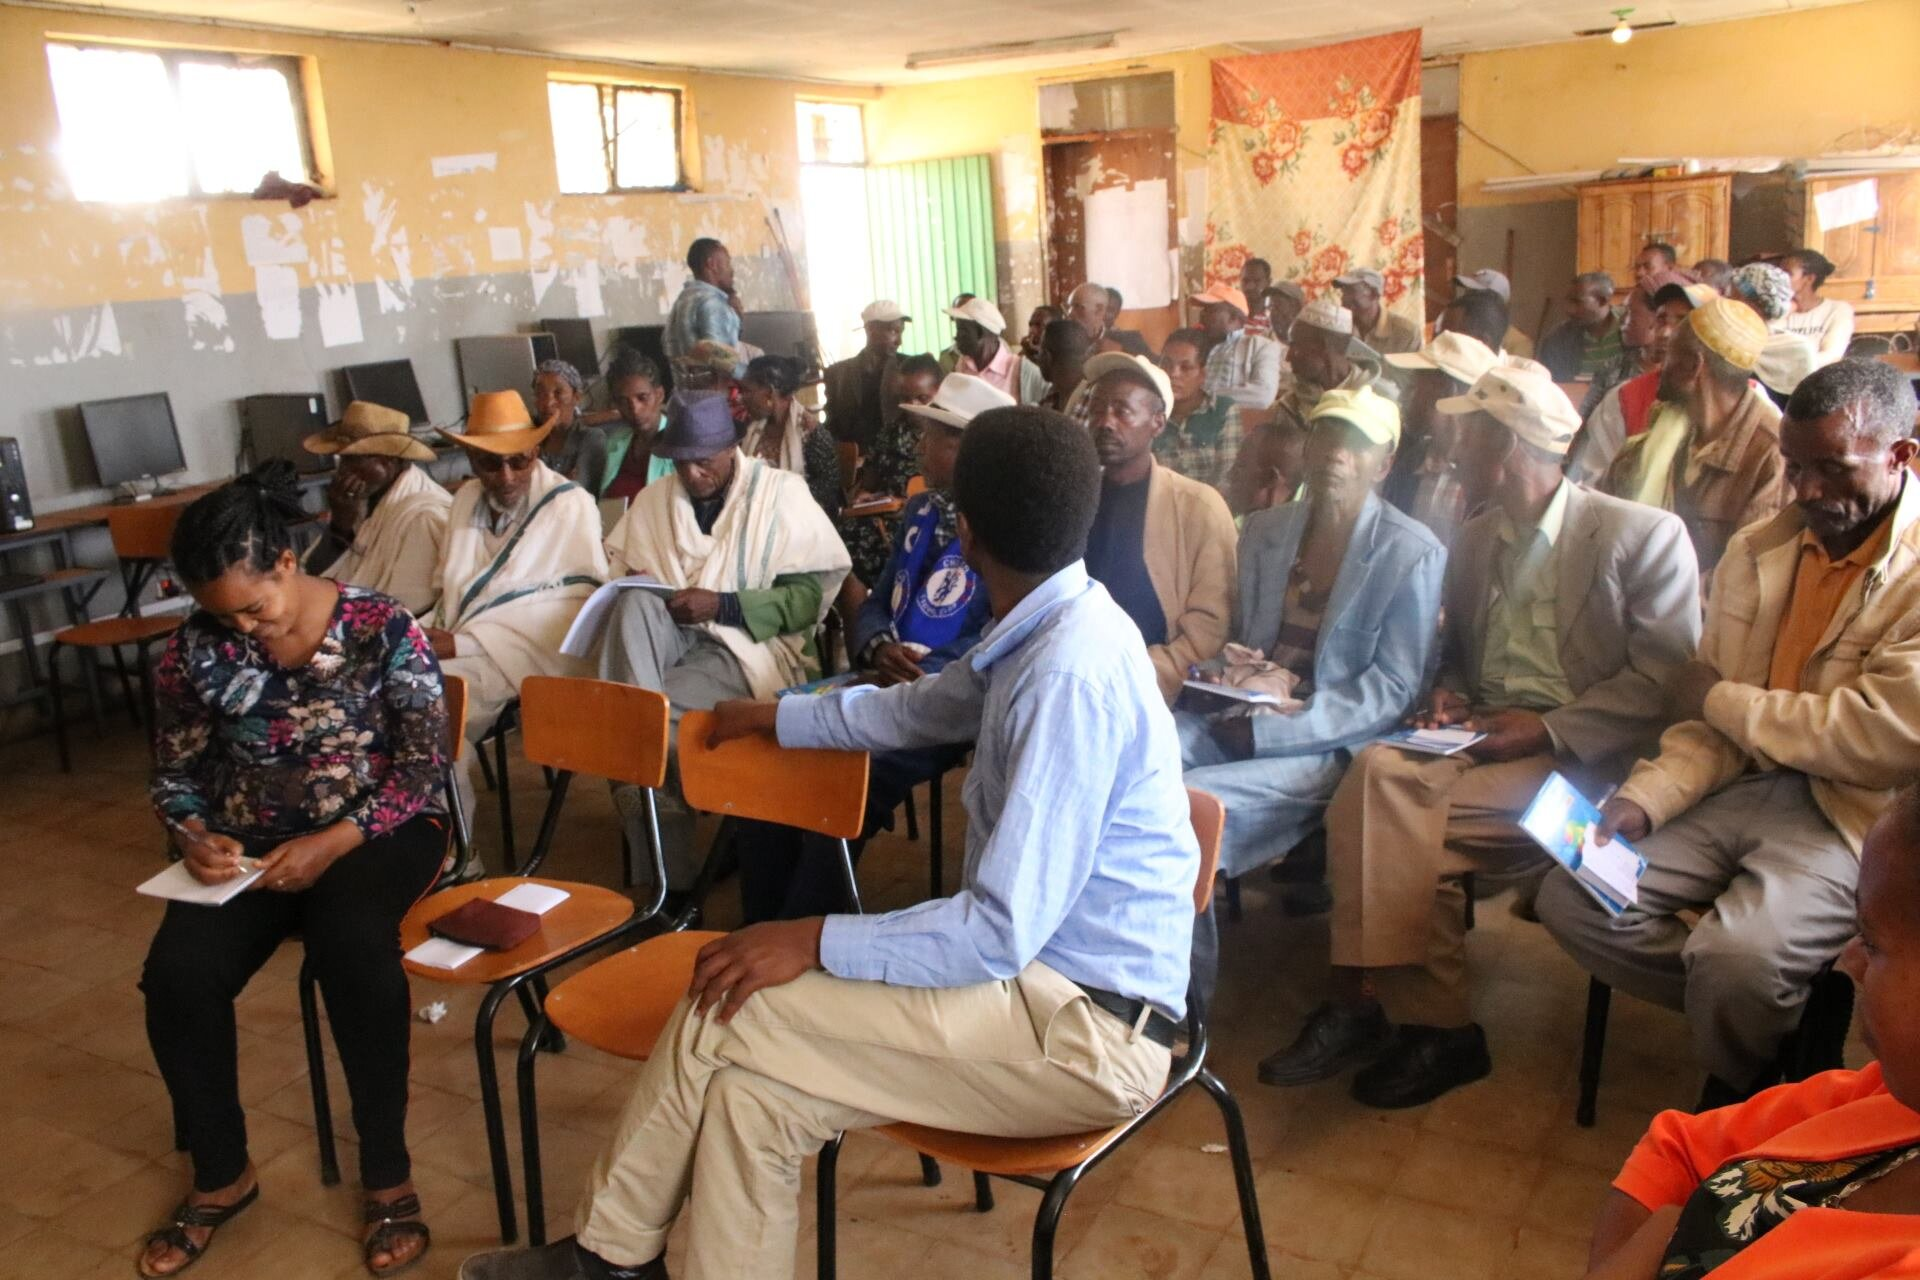 In planning for the inclusive education program at Mudula Primary School, WEEMA's Education Program Manager, Assefa Tadesse, facilitated training and awareness raising sessions with community stakeholders. Participants included representatives of faith-based organizations, the parent teacher association, influential elders, Idir leaders, and disability union kebele leaders.